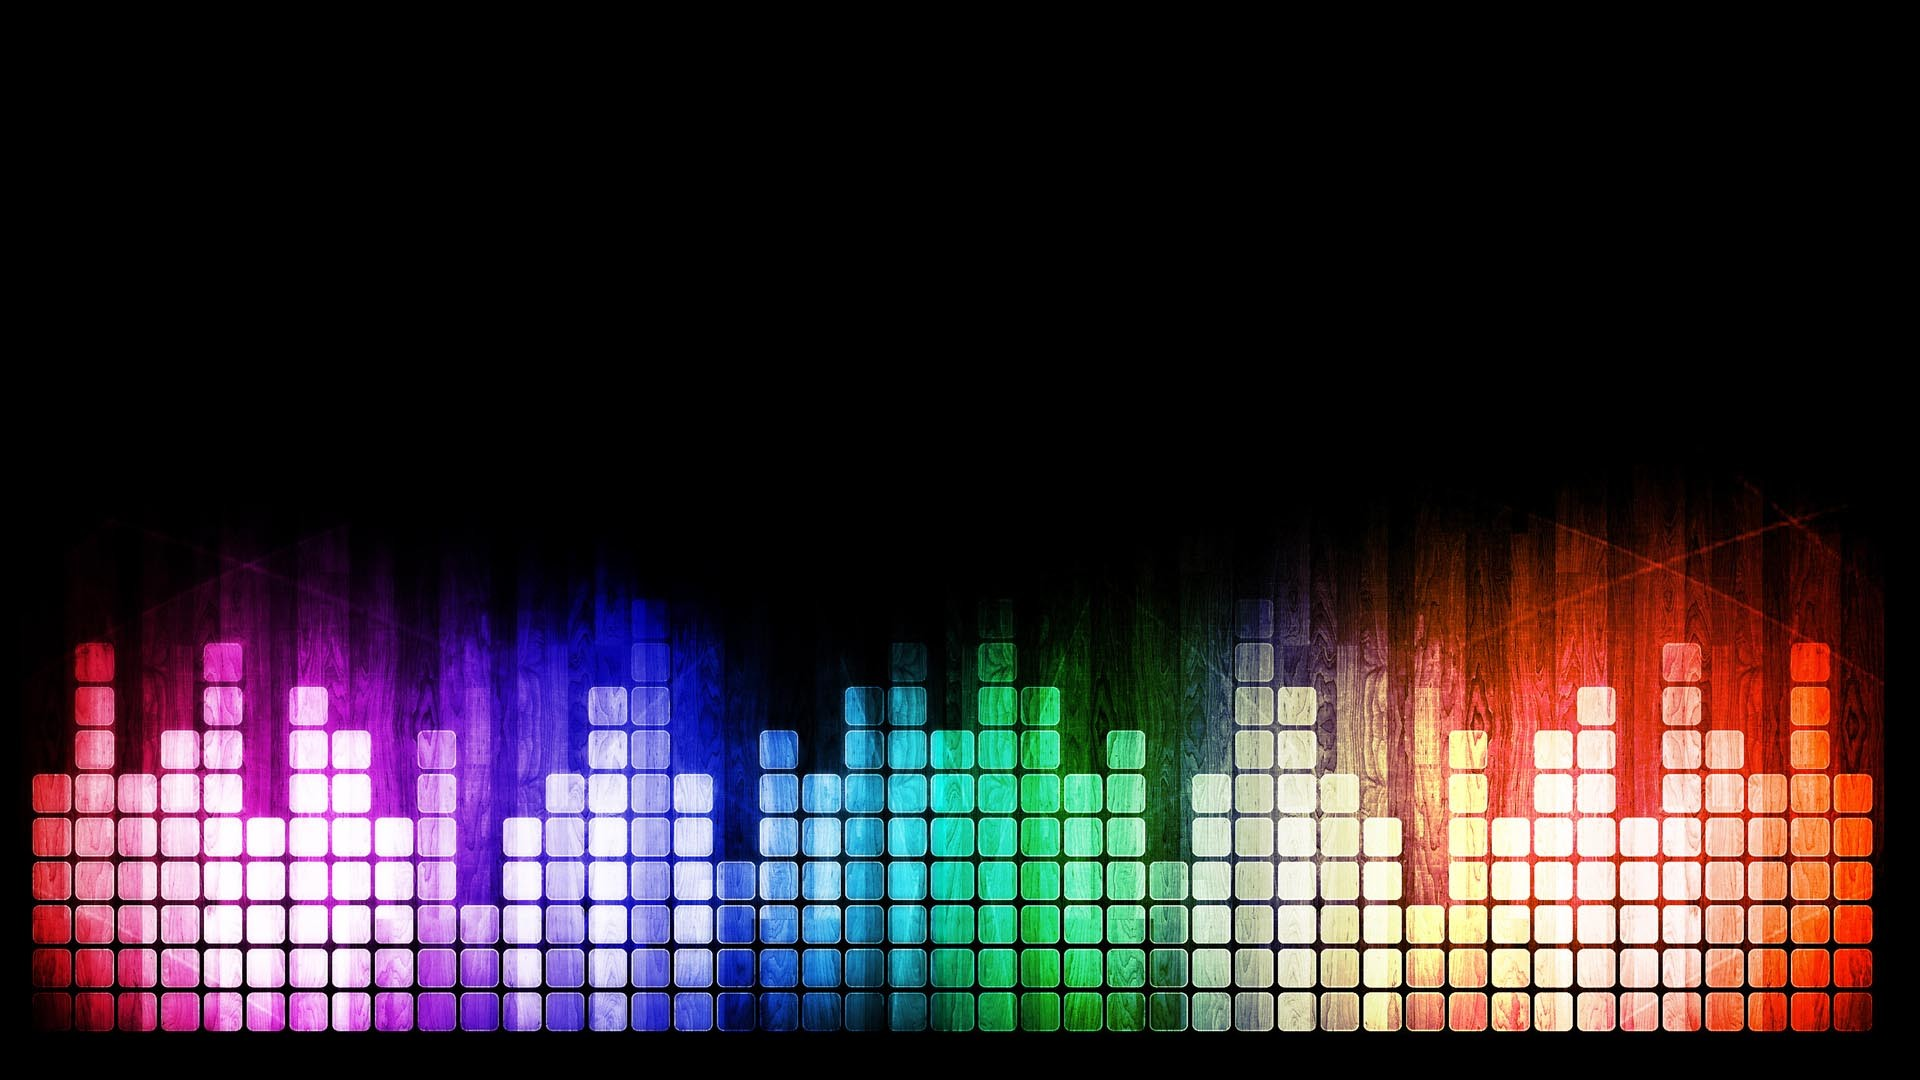 Amazing Wallpaper Music Macbook - 470817-vertical-cool-music-background-wallpapers-1920x1080-for-macbook  Graphic_625220.jpg